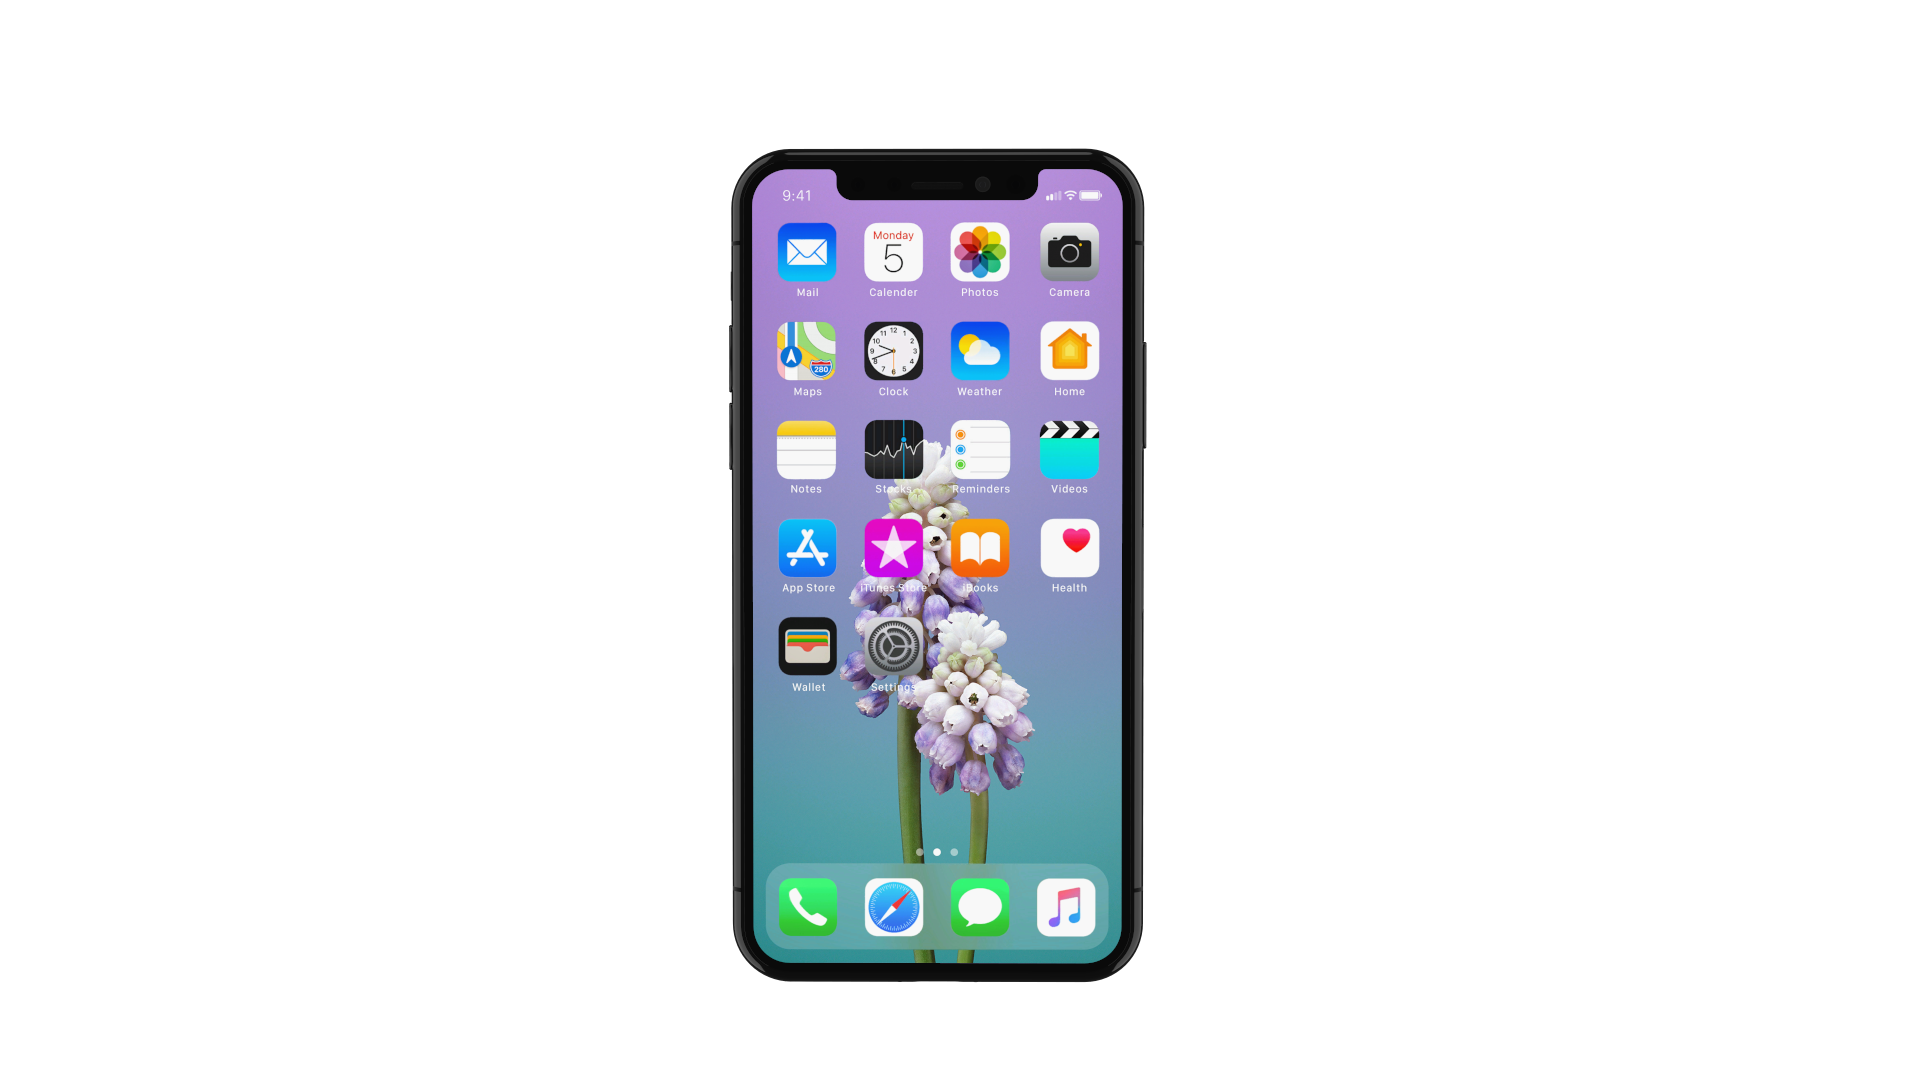 Iphone X Images Full Hd